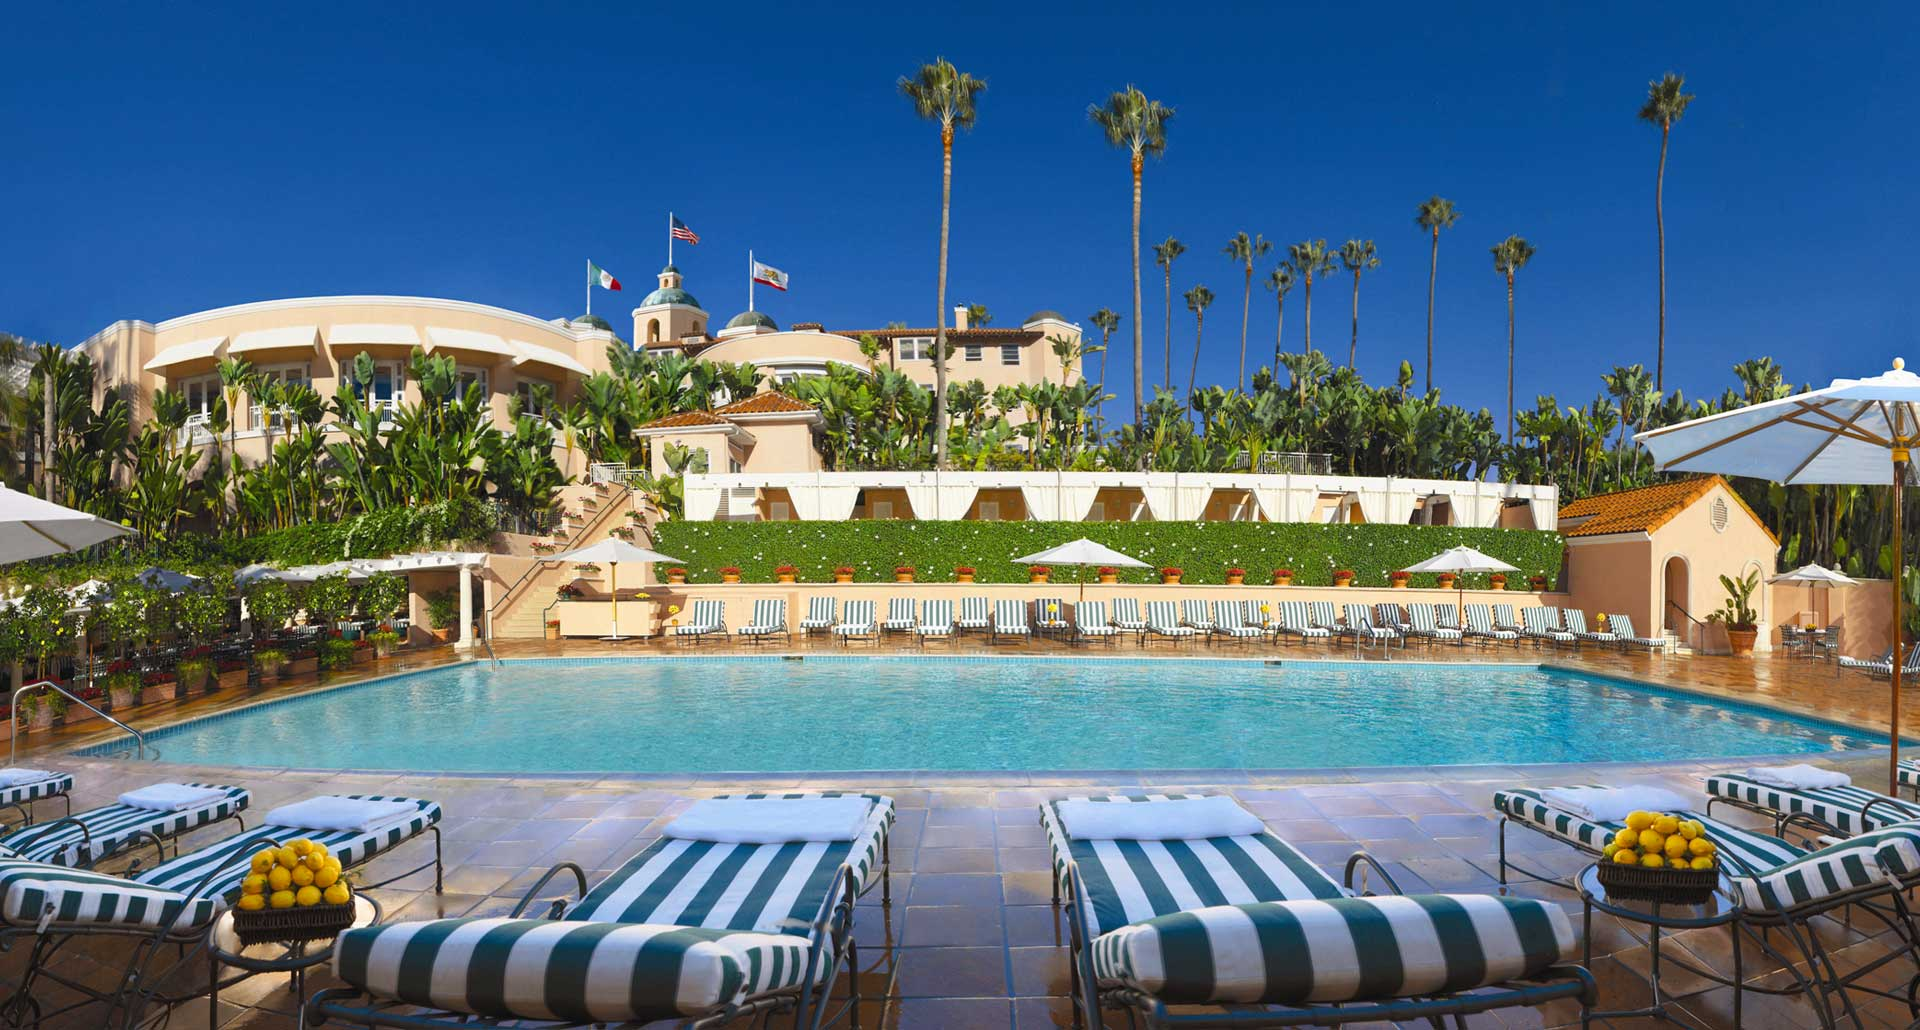 The Beverly Hills Hotel - best hotel poolin Los Angeles